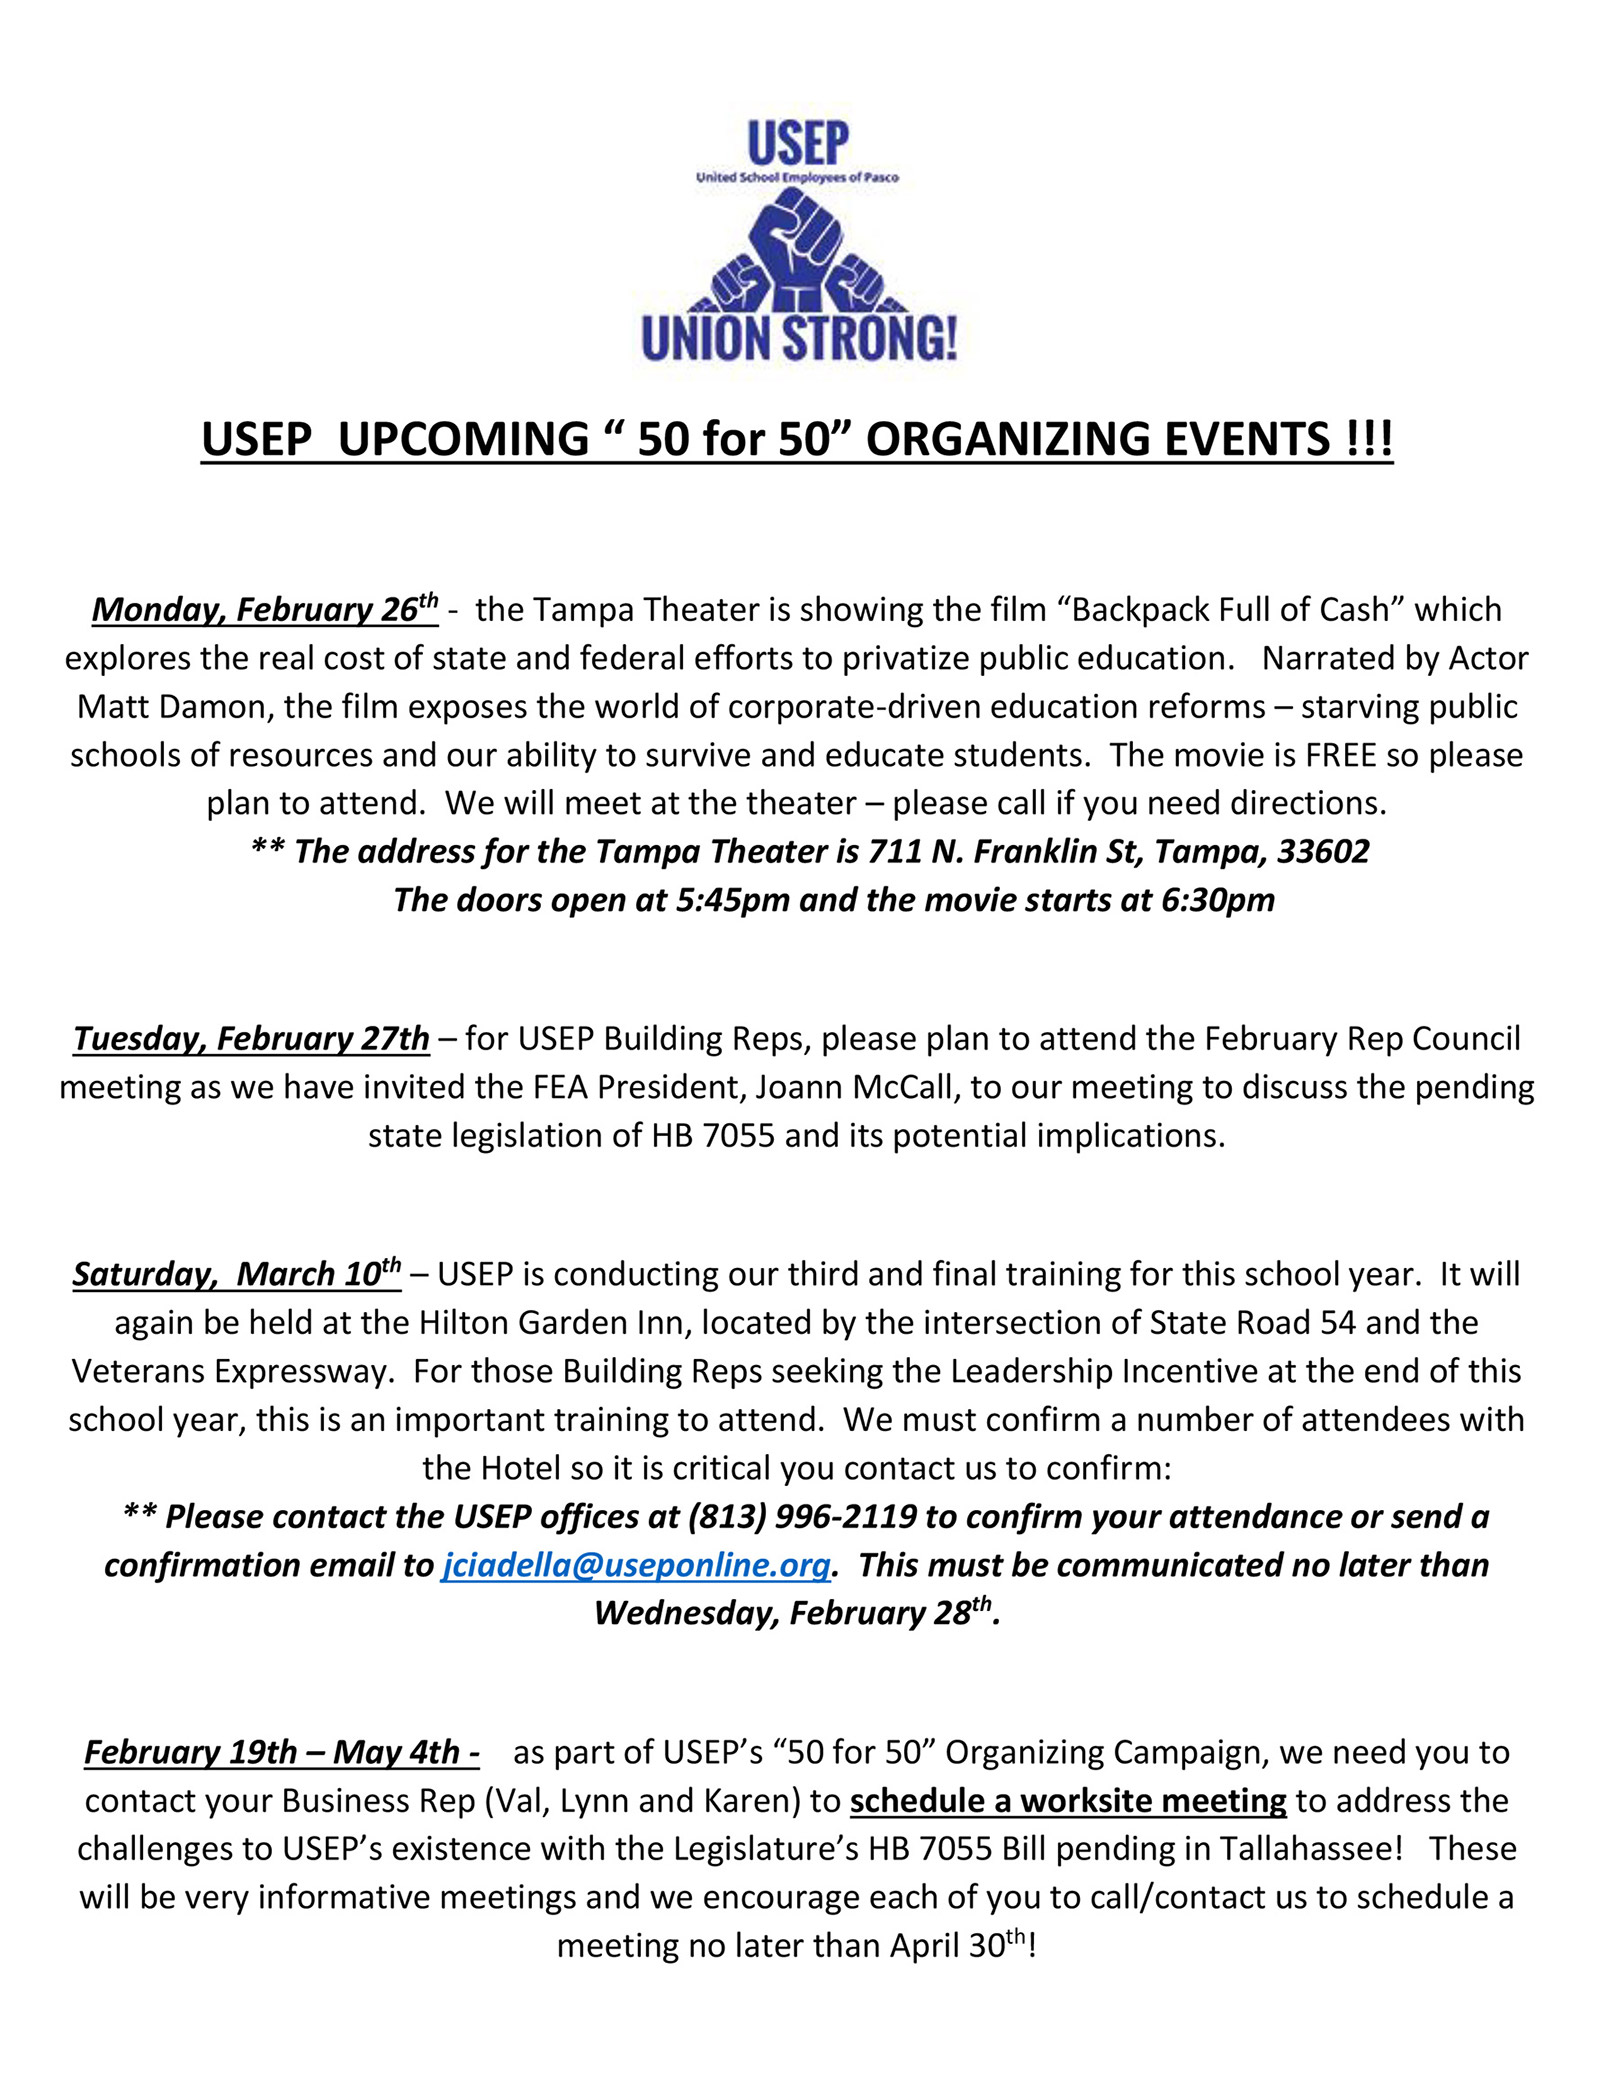 usep-upcoming-events